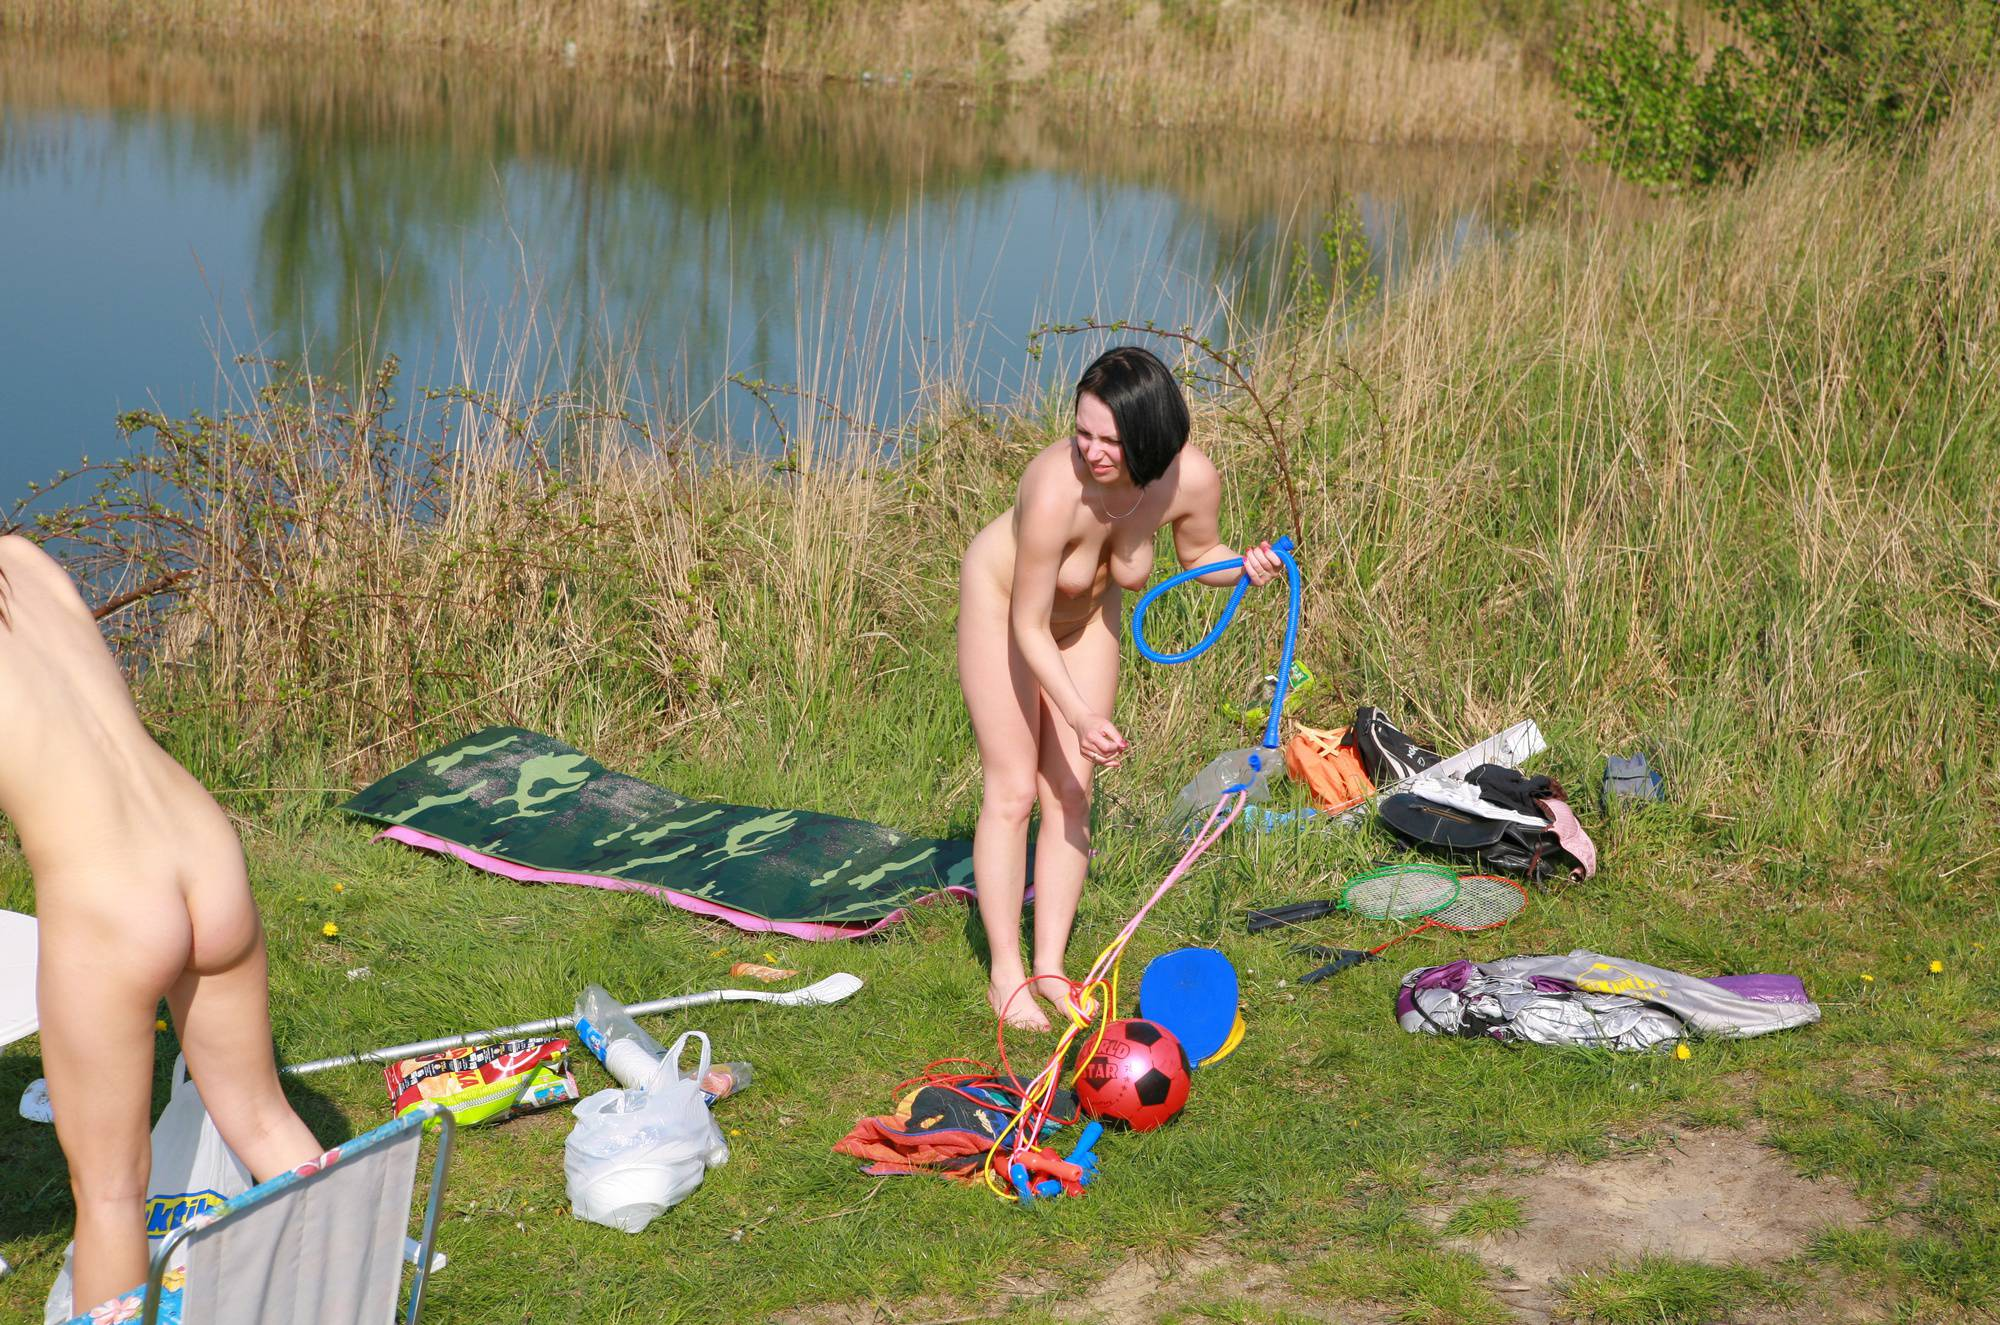 Nudist Pics Lake Brzegi Couple Part - 1